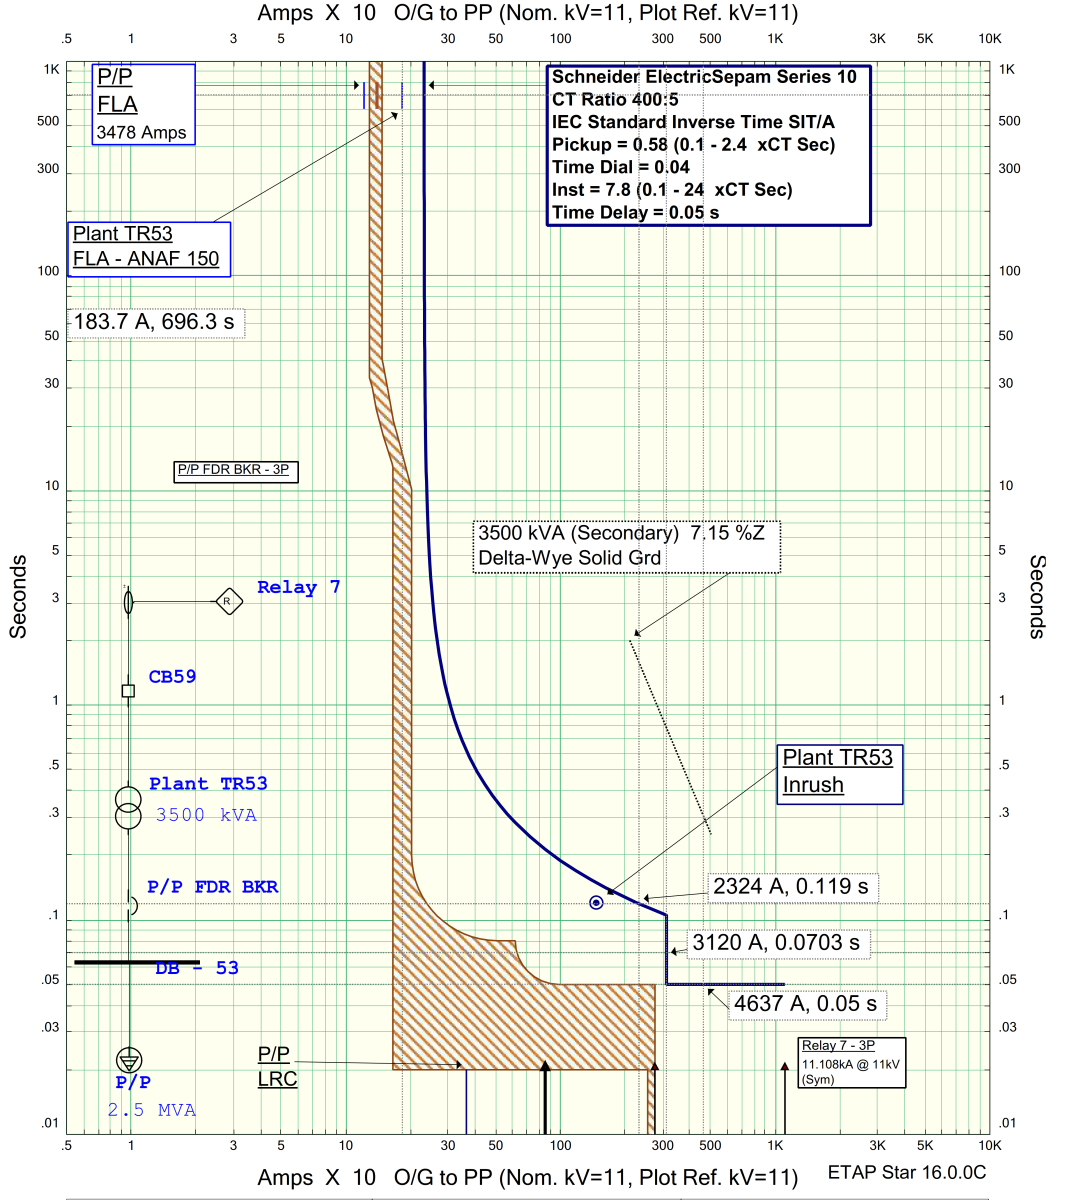 Transformer TCC curve for 50P and 51P functions.